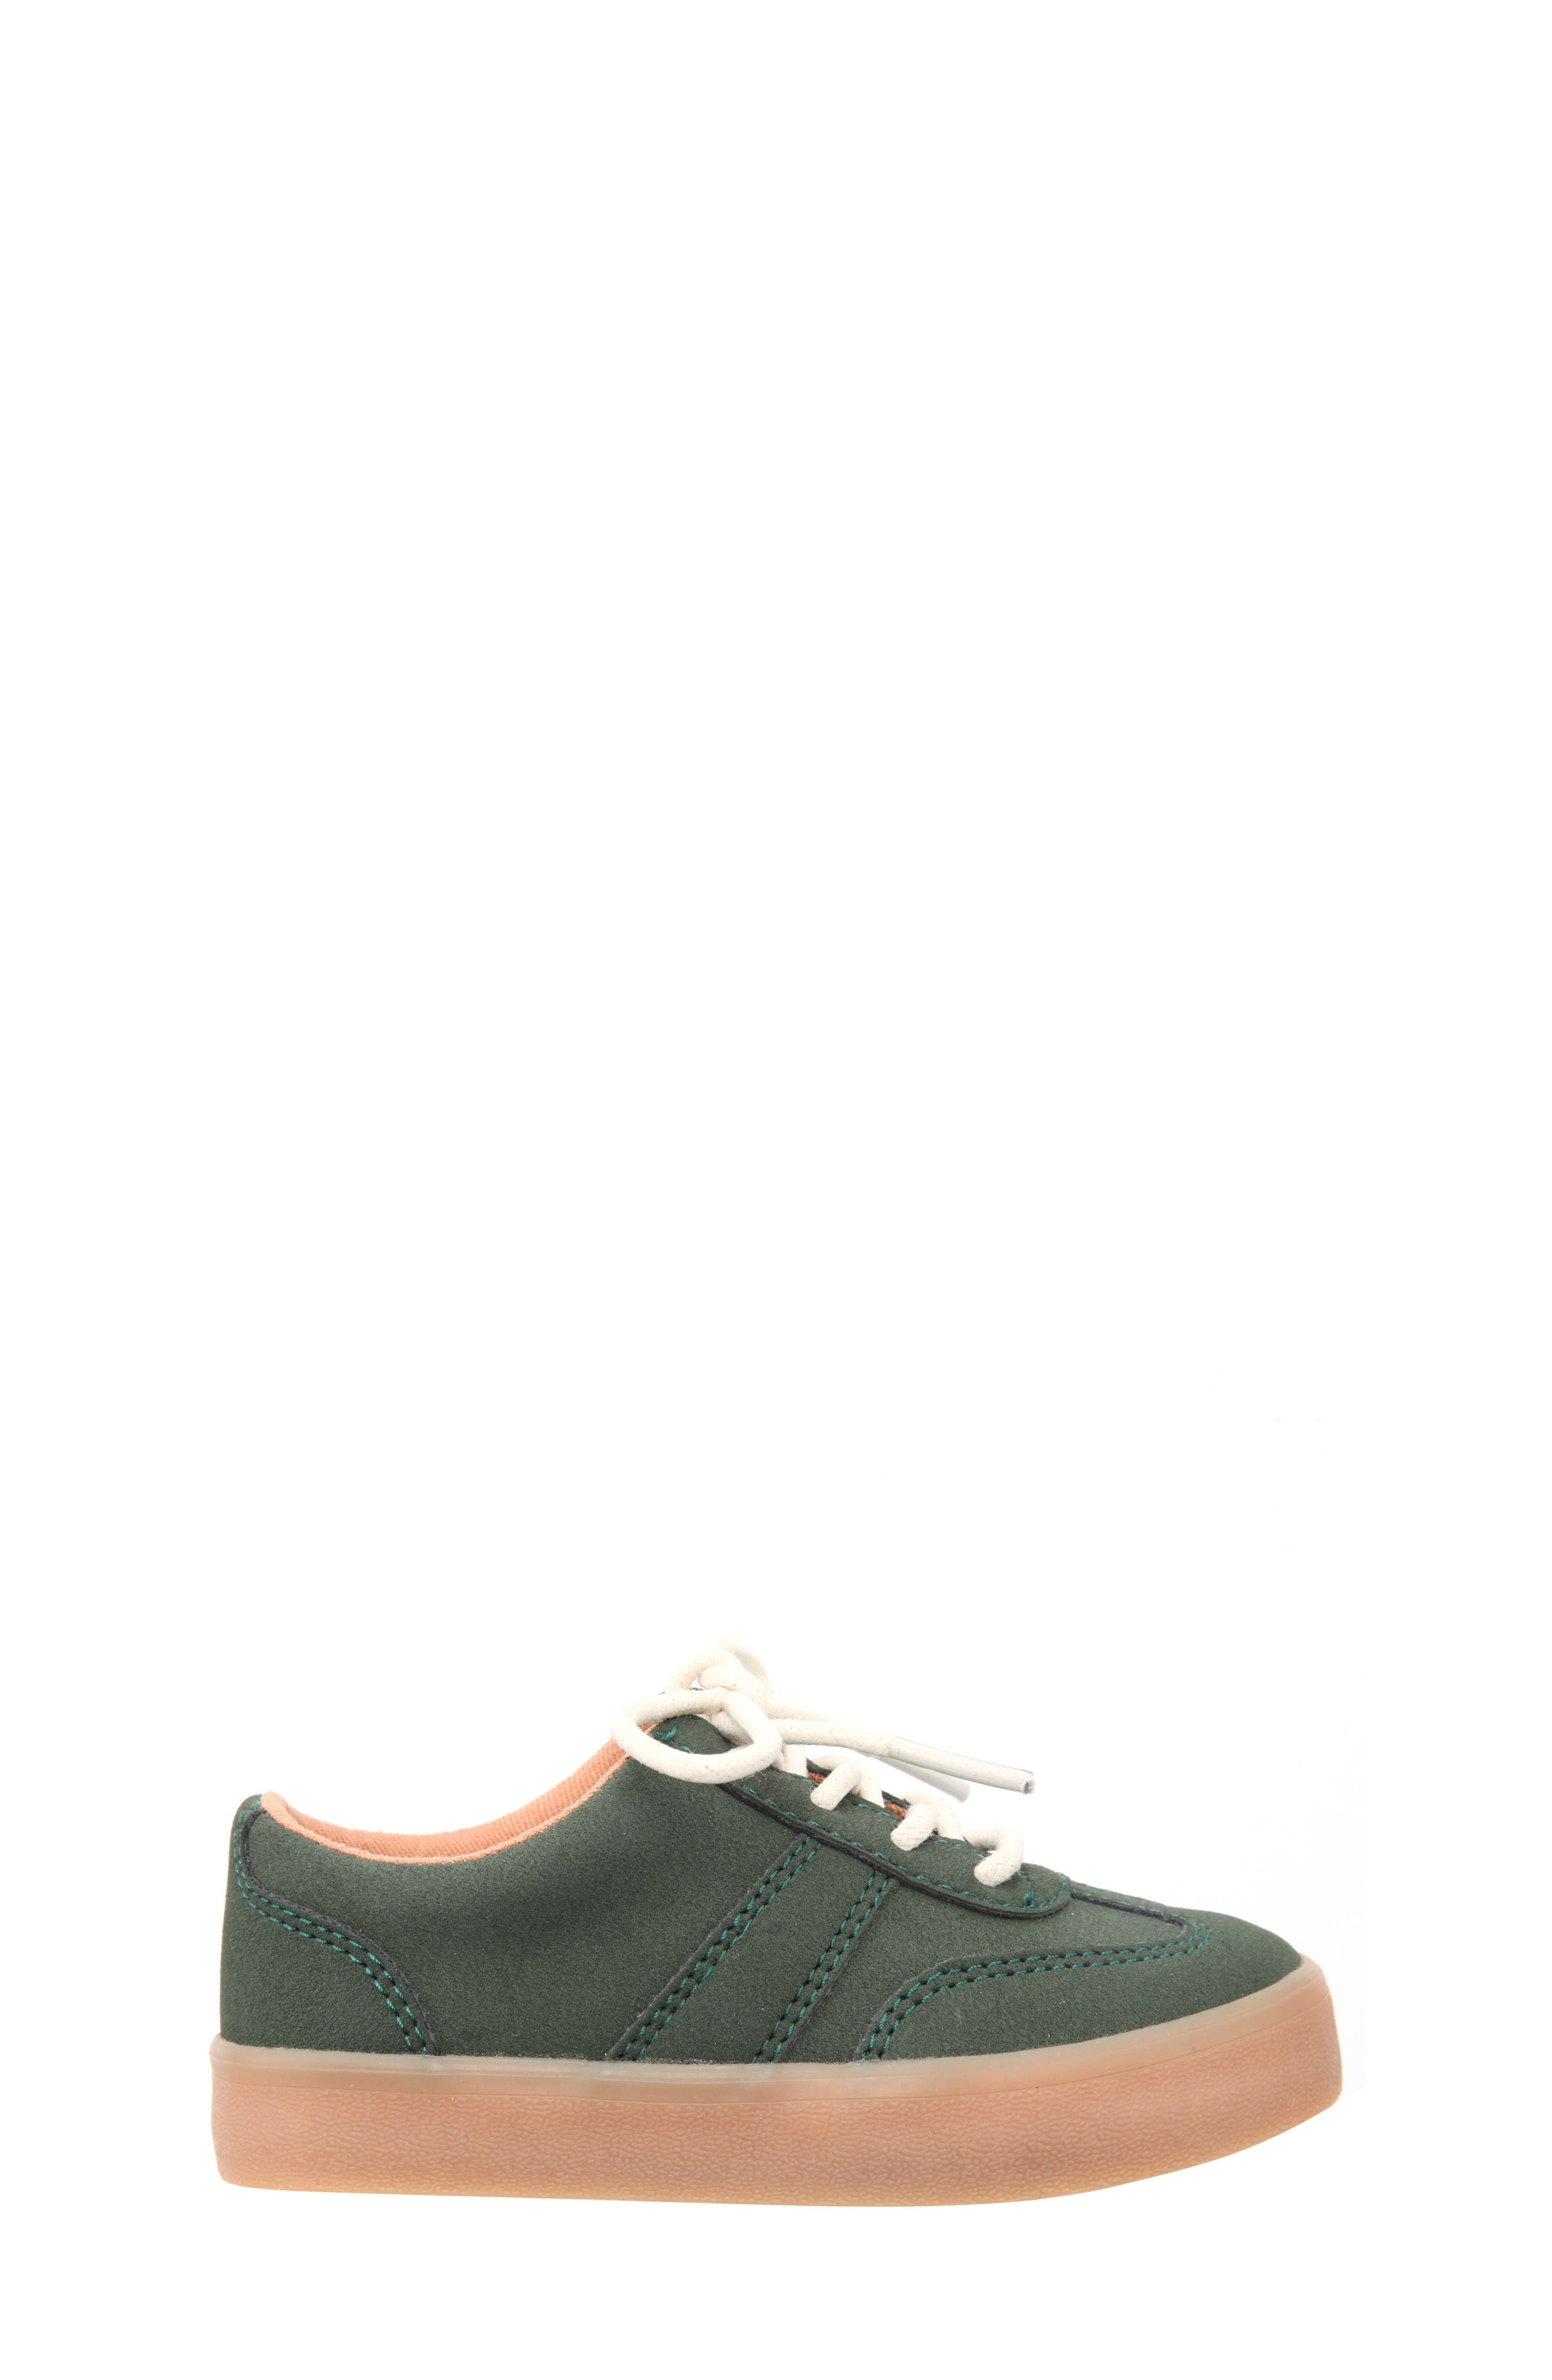 Neal Low Top Sneaker,                             Alternate thumbnail 3, color,                             Olive Suede